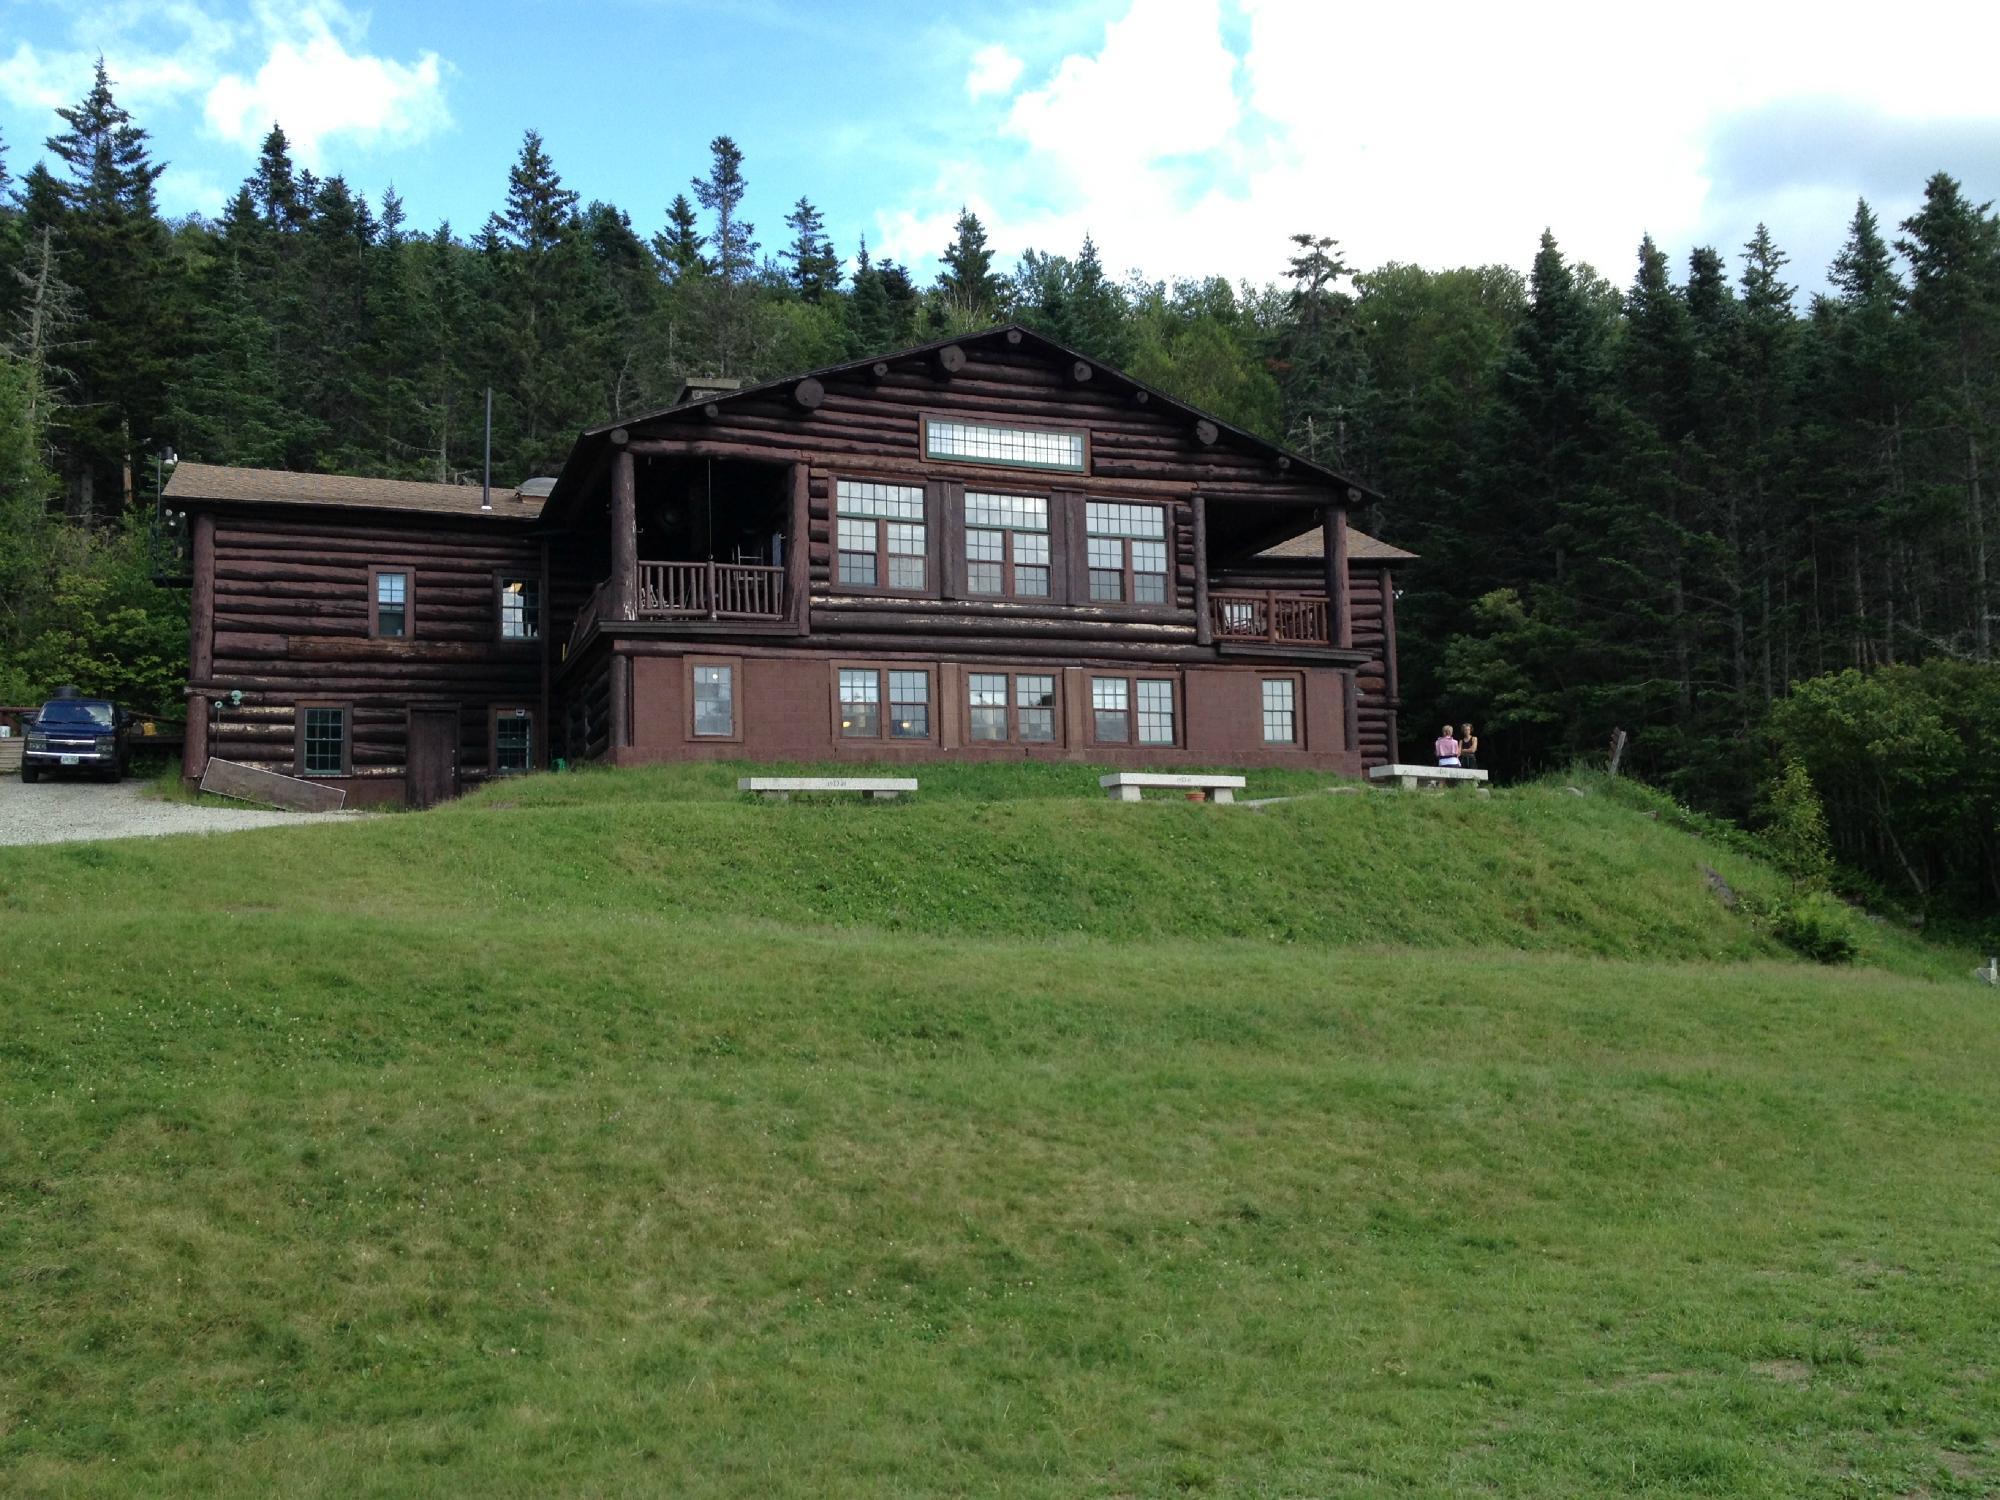 Moosilauke Ravine Lodge